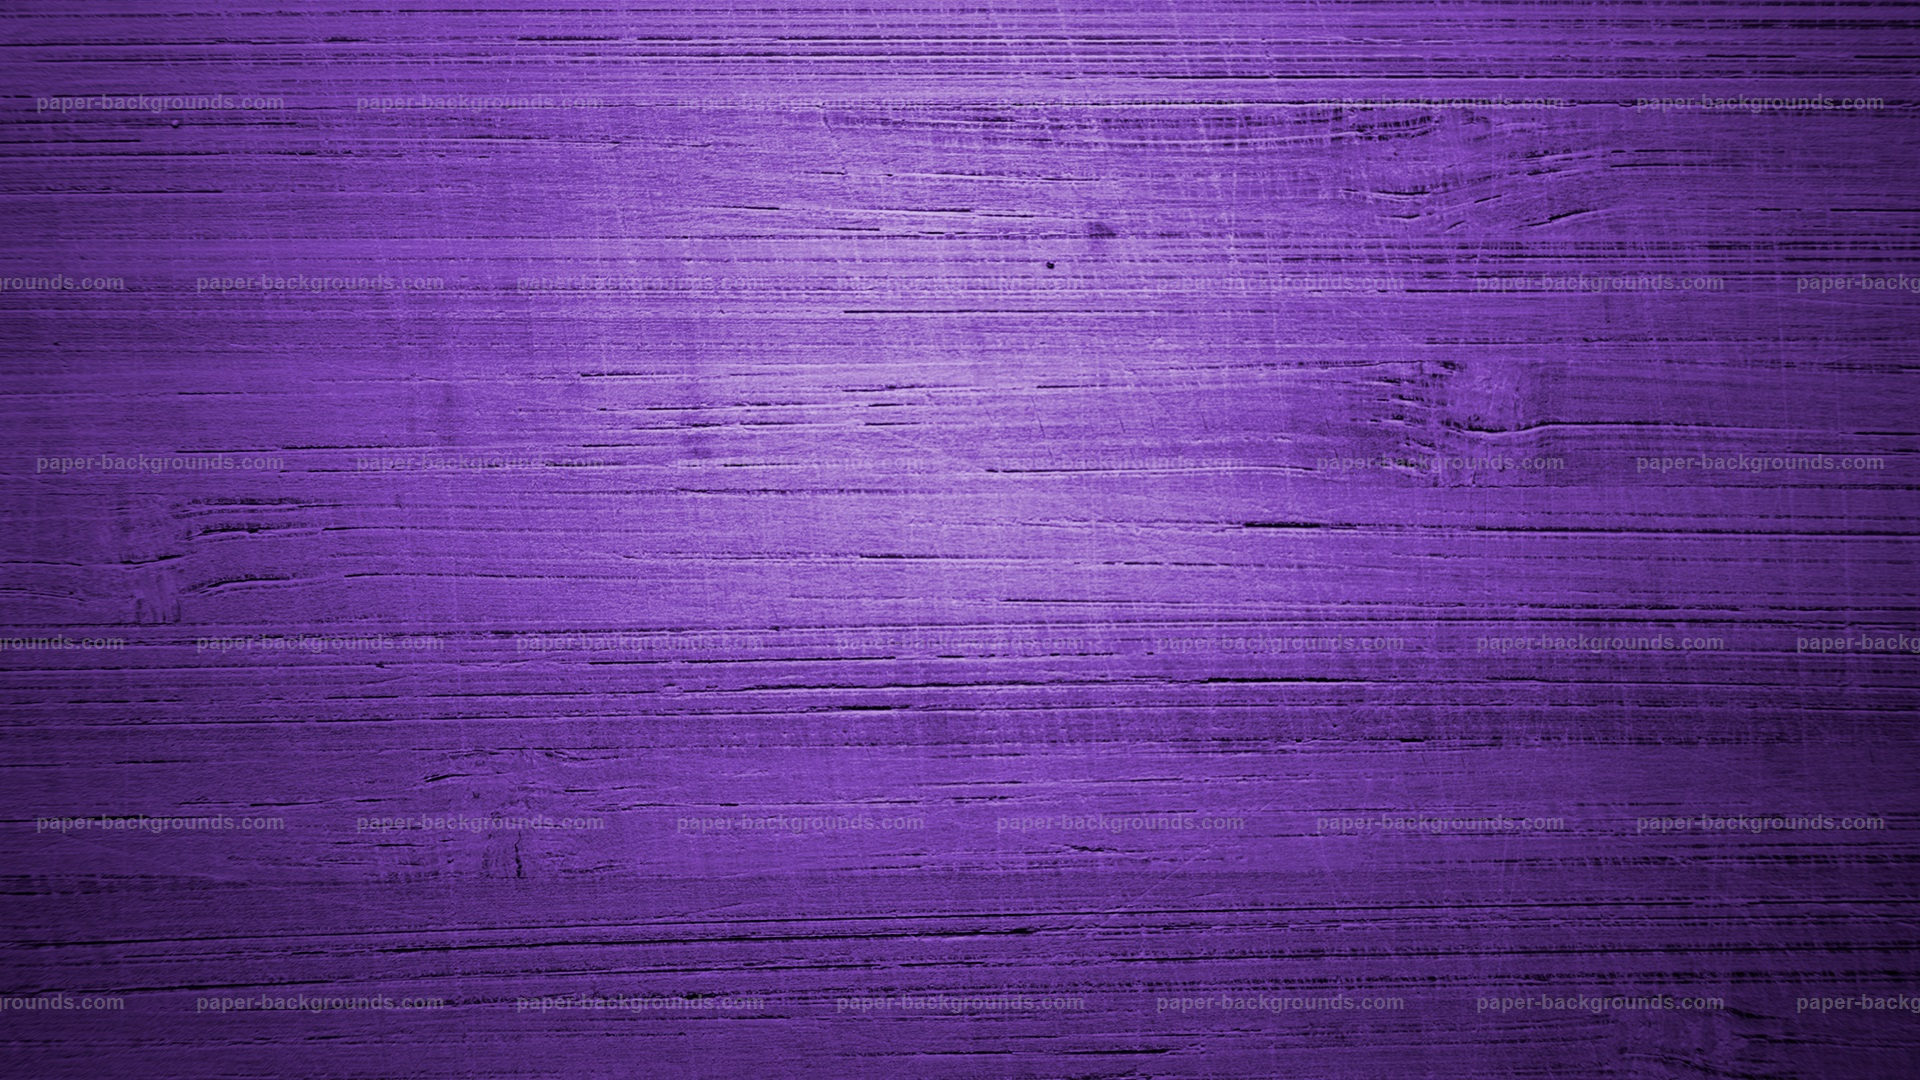 Purple Wood Texture Background HD Paper Backgrounds 1920x1080